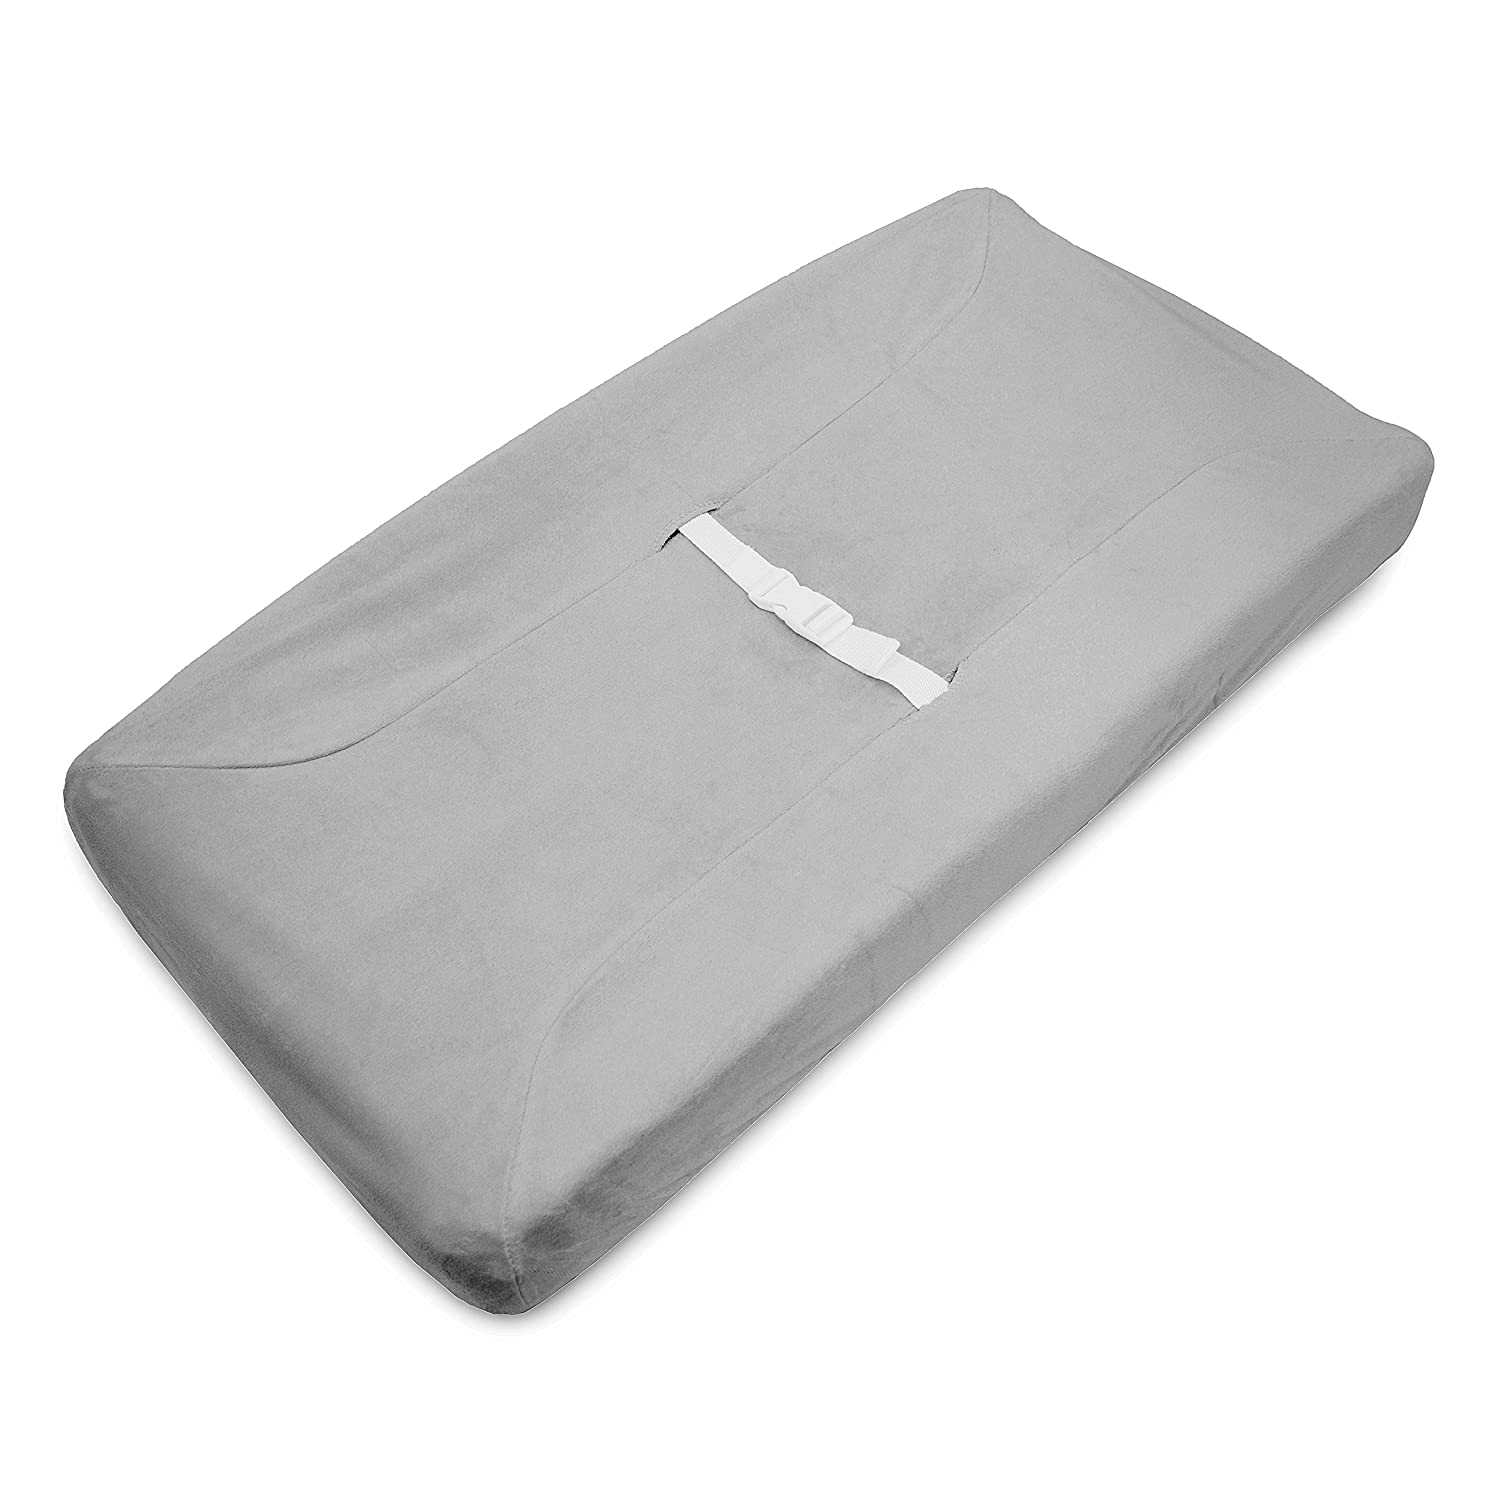 soft Grey baby cover in the diamond pattern including small cherry core cushion unisex warm